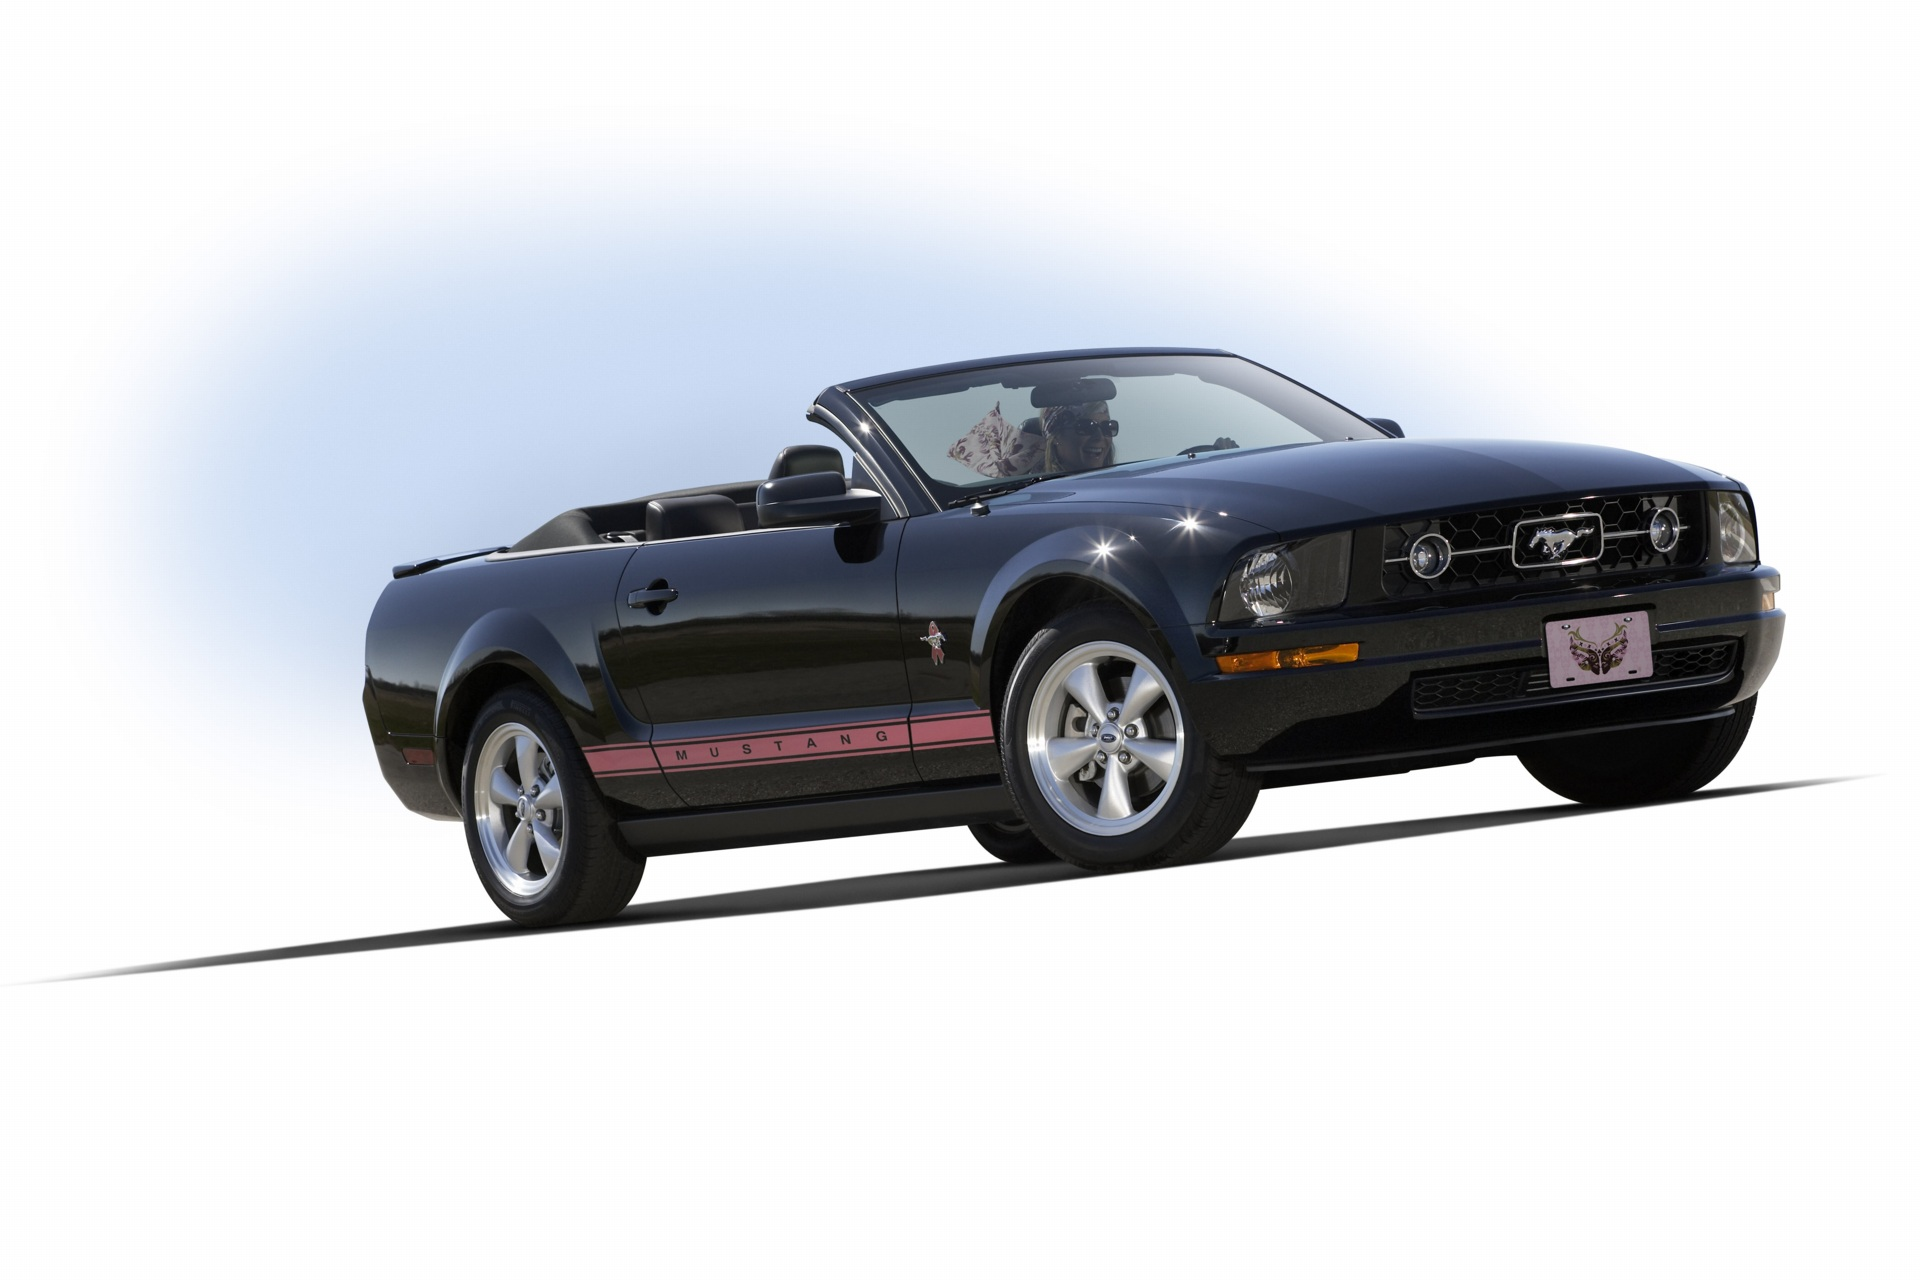 2008 ford mustang wip news and information. Black Bedroom Furniture Sets. Home Design Ideas